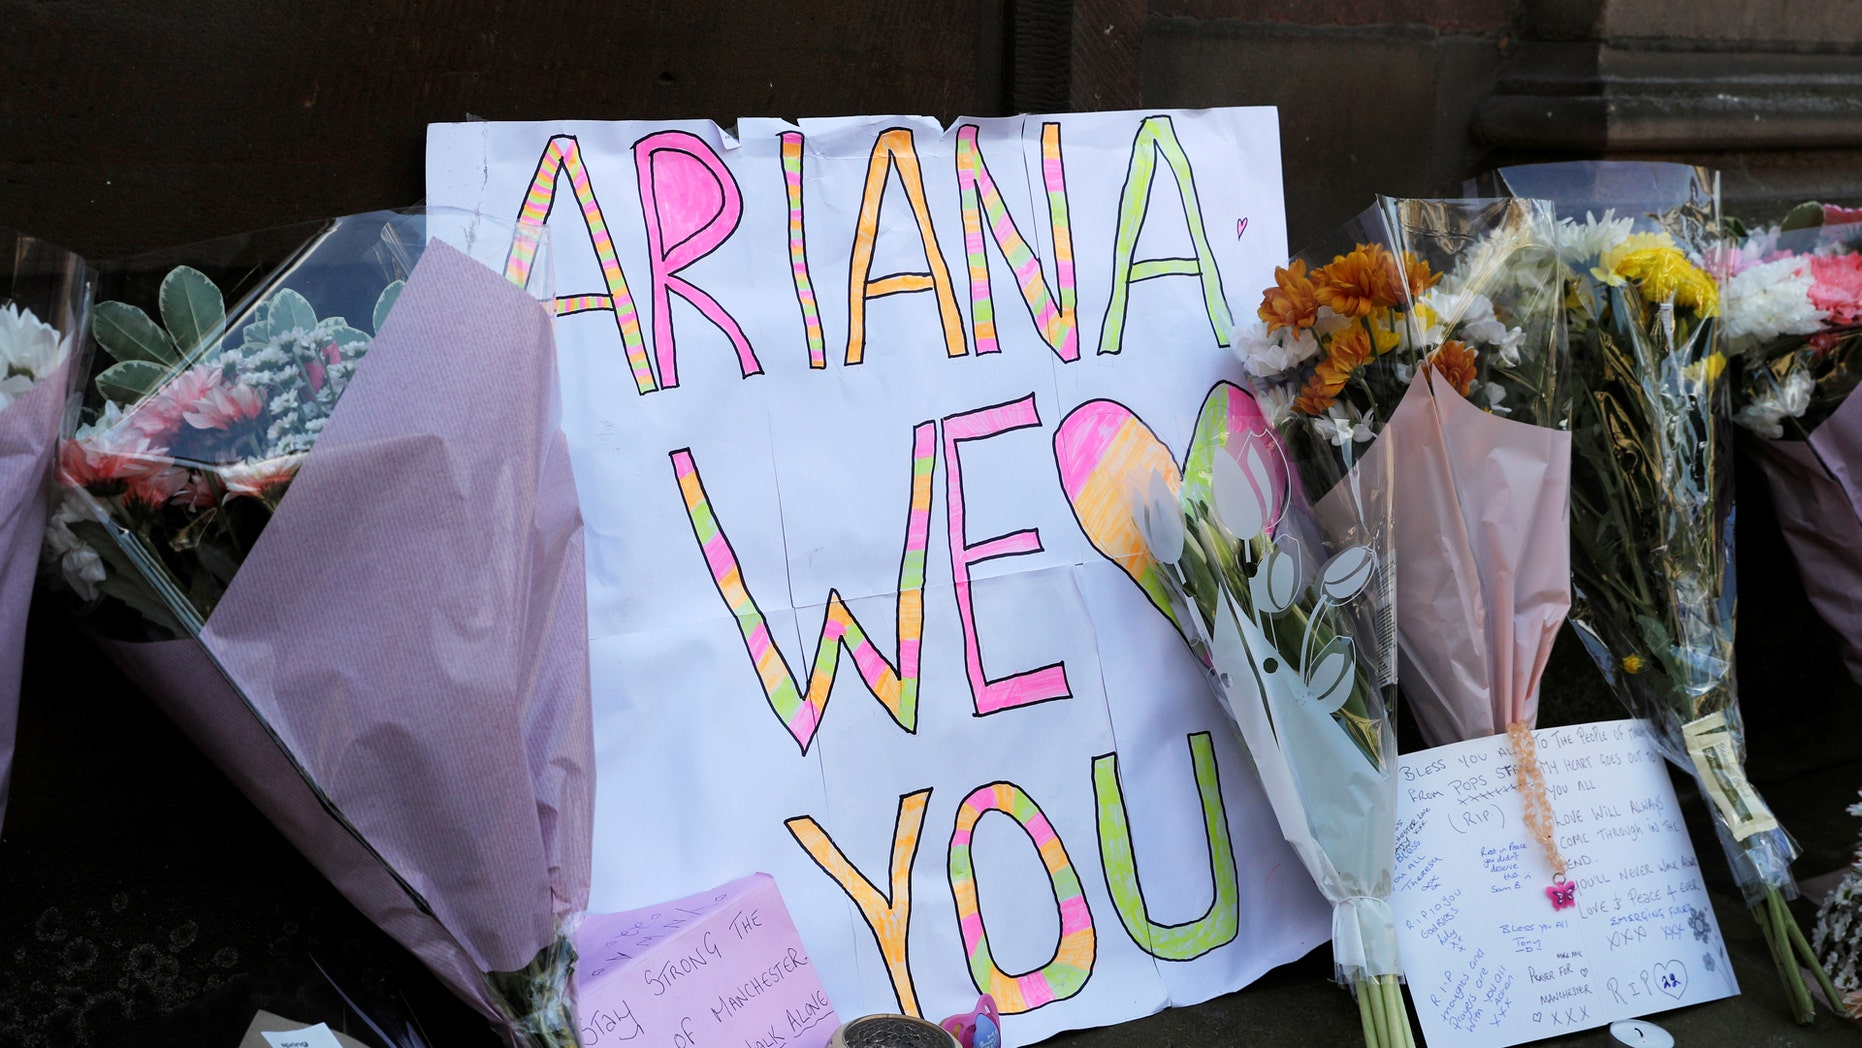 Fans made signs praising Grande after the Manchester explosion in May, 2017.